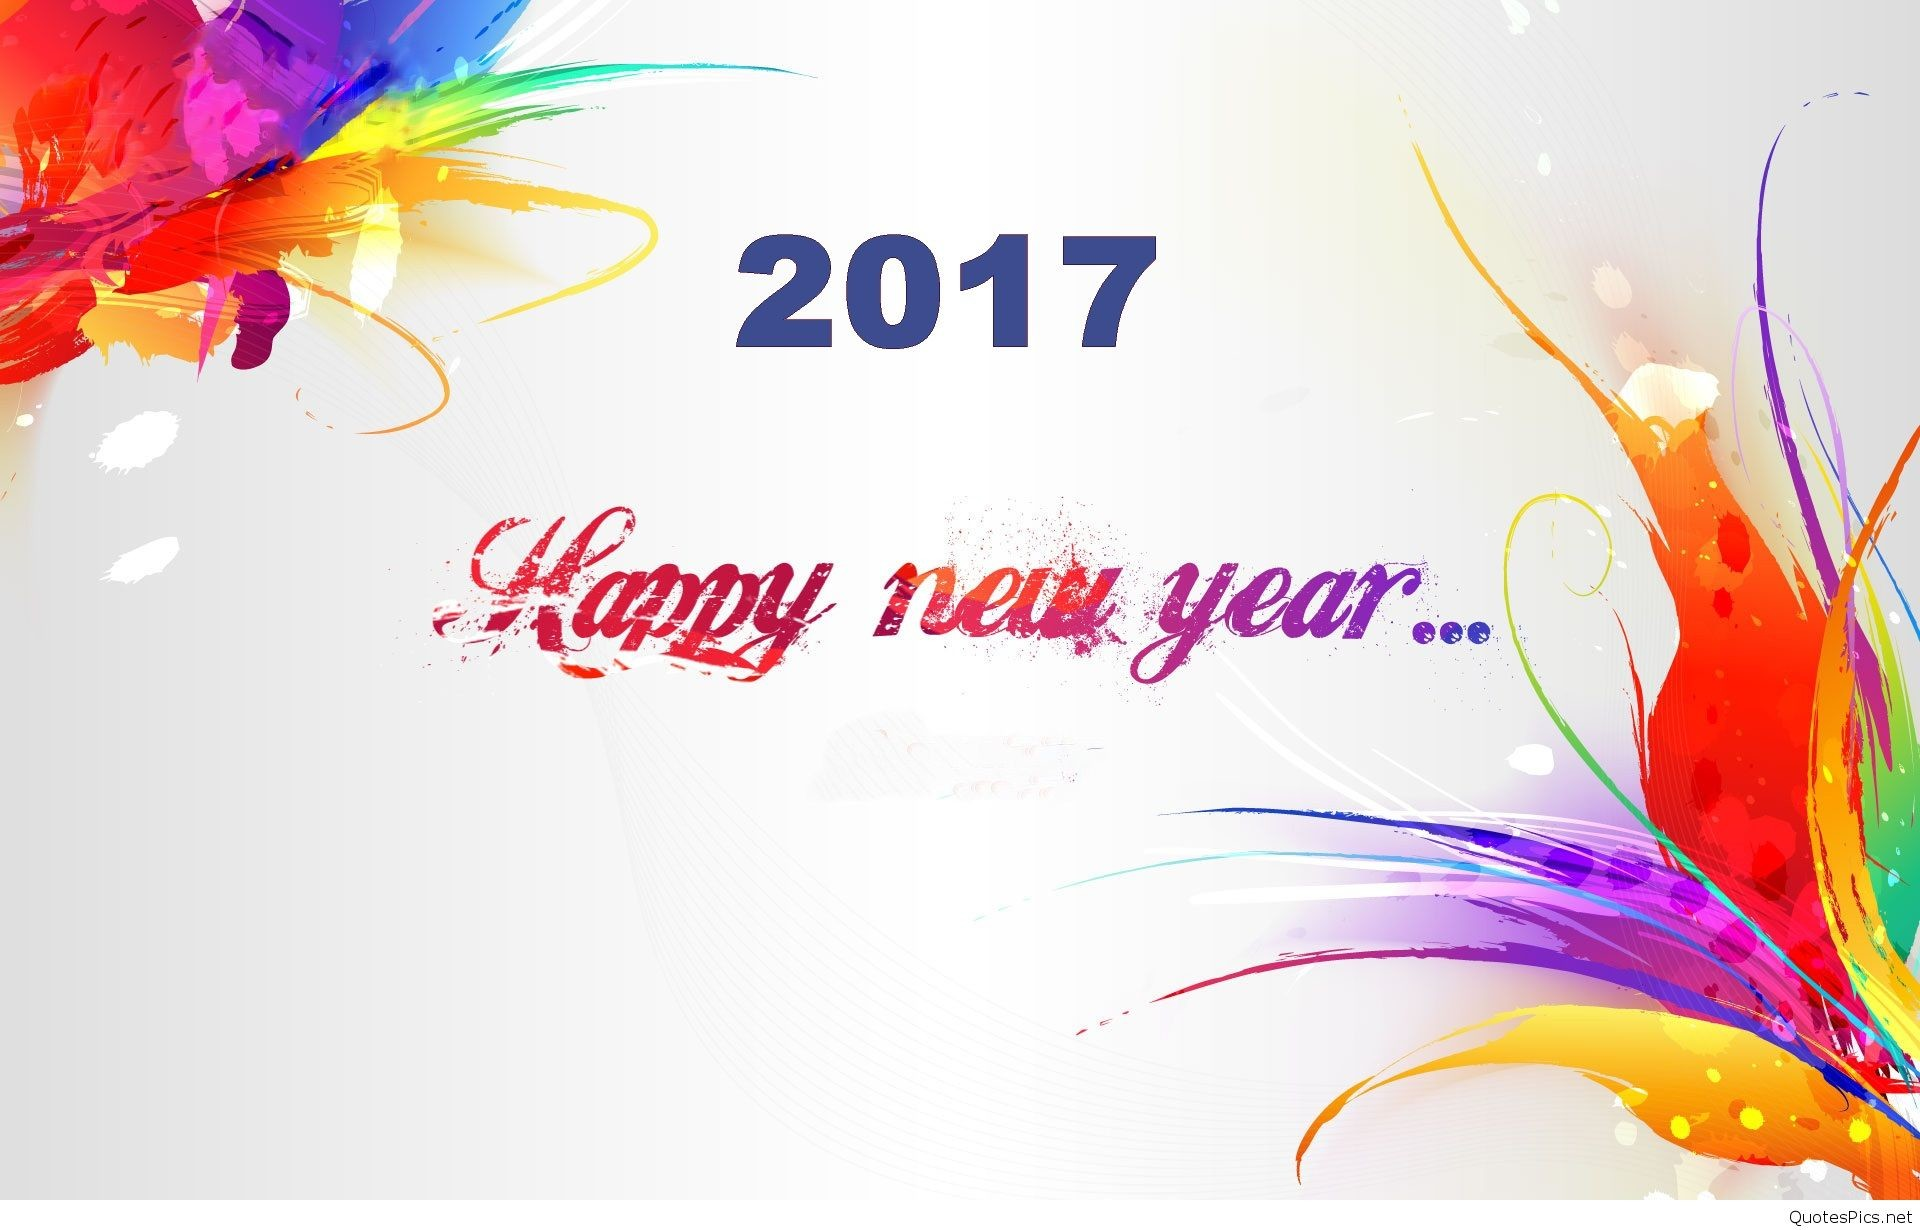 1920x1080 1080p happy new year 2017 wallpapers